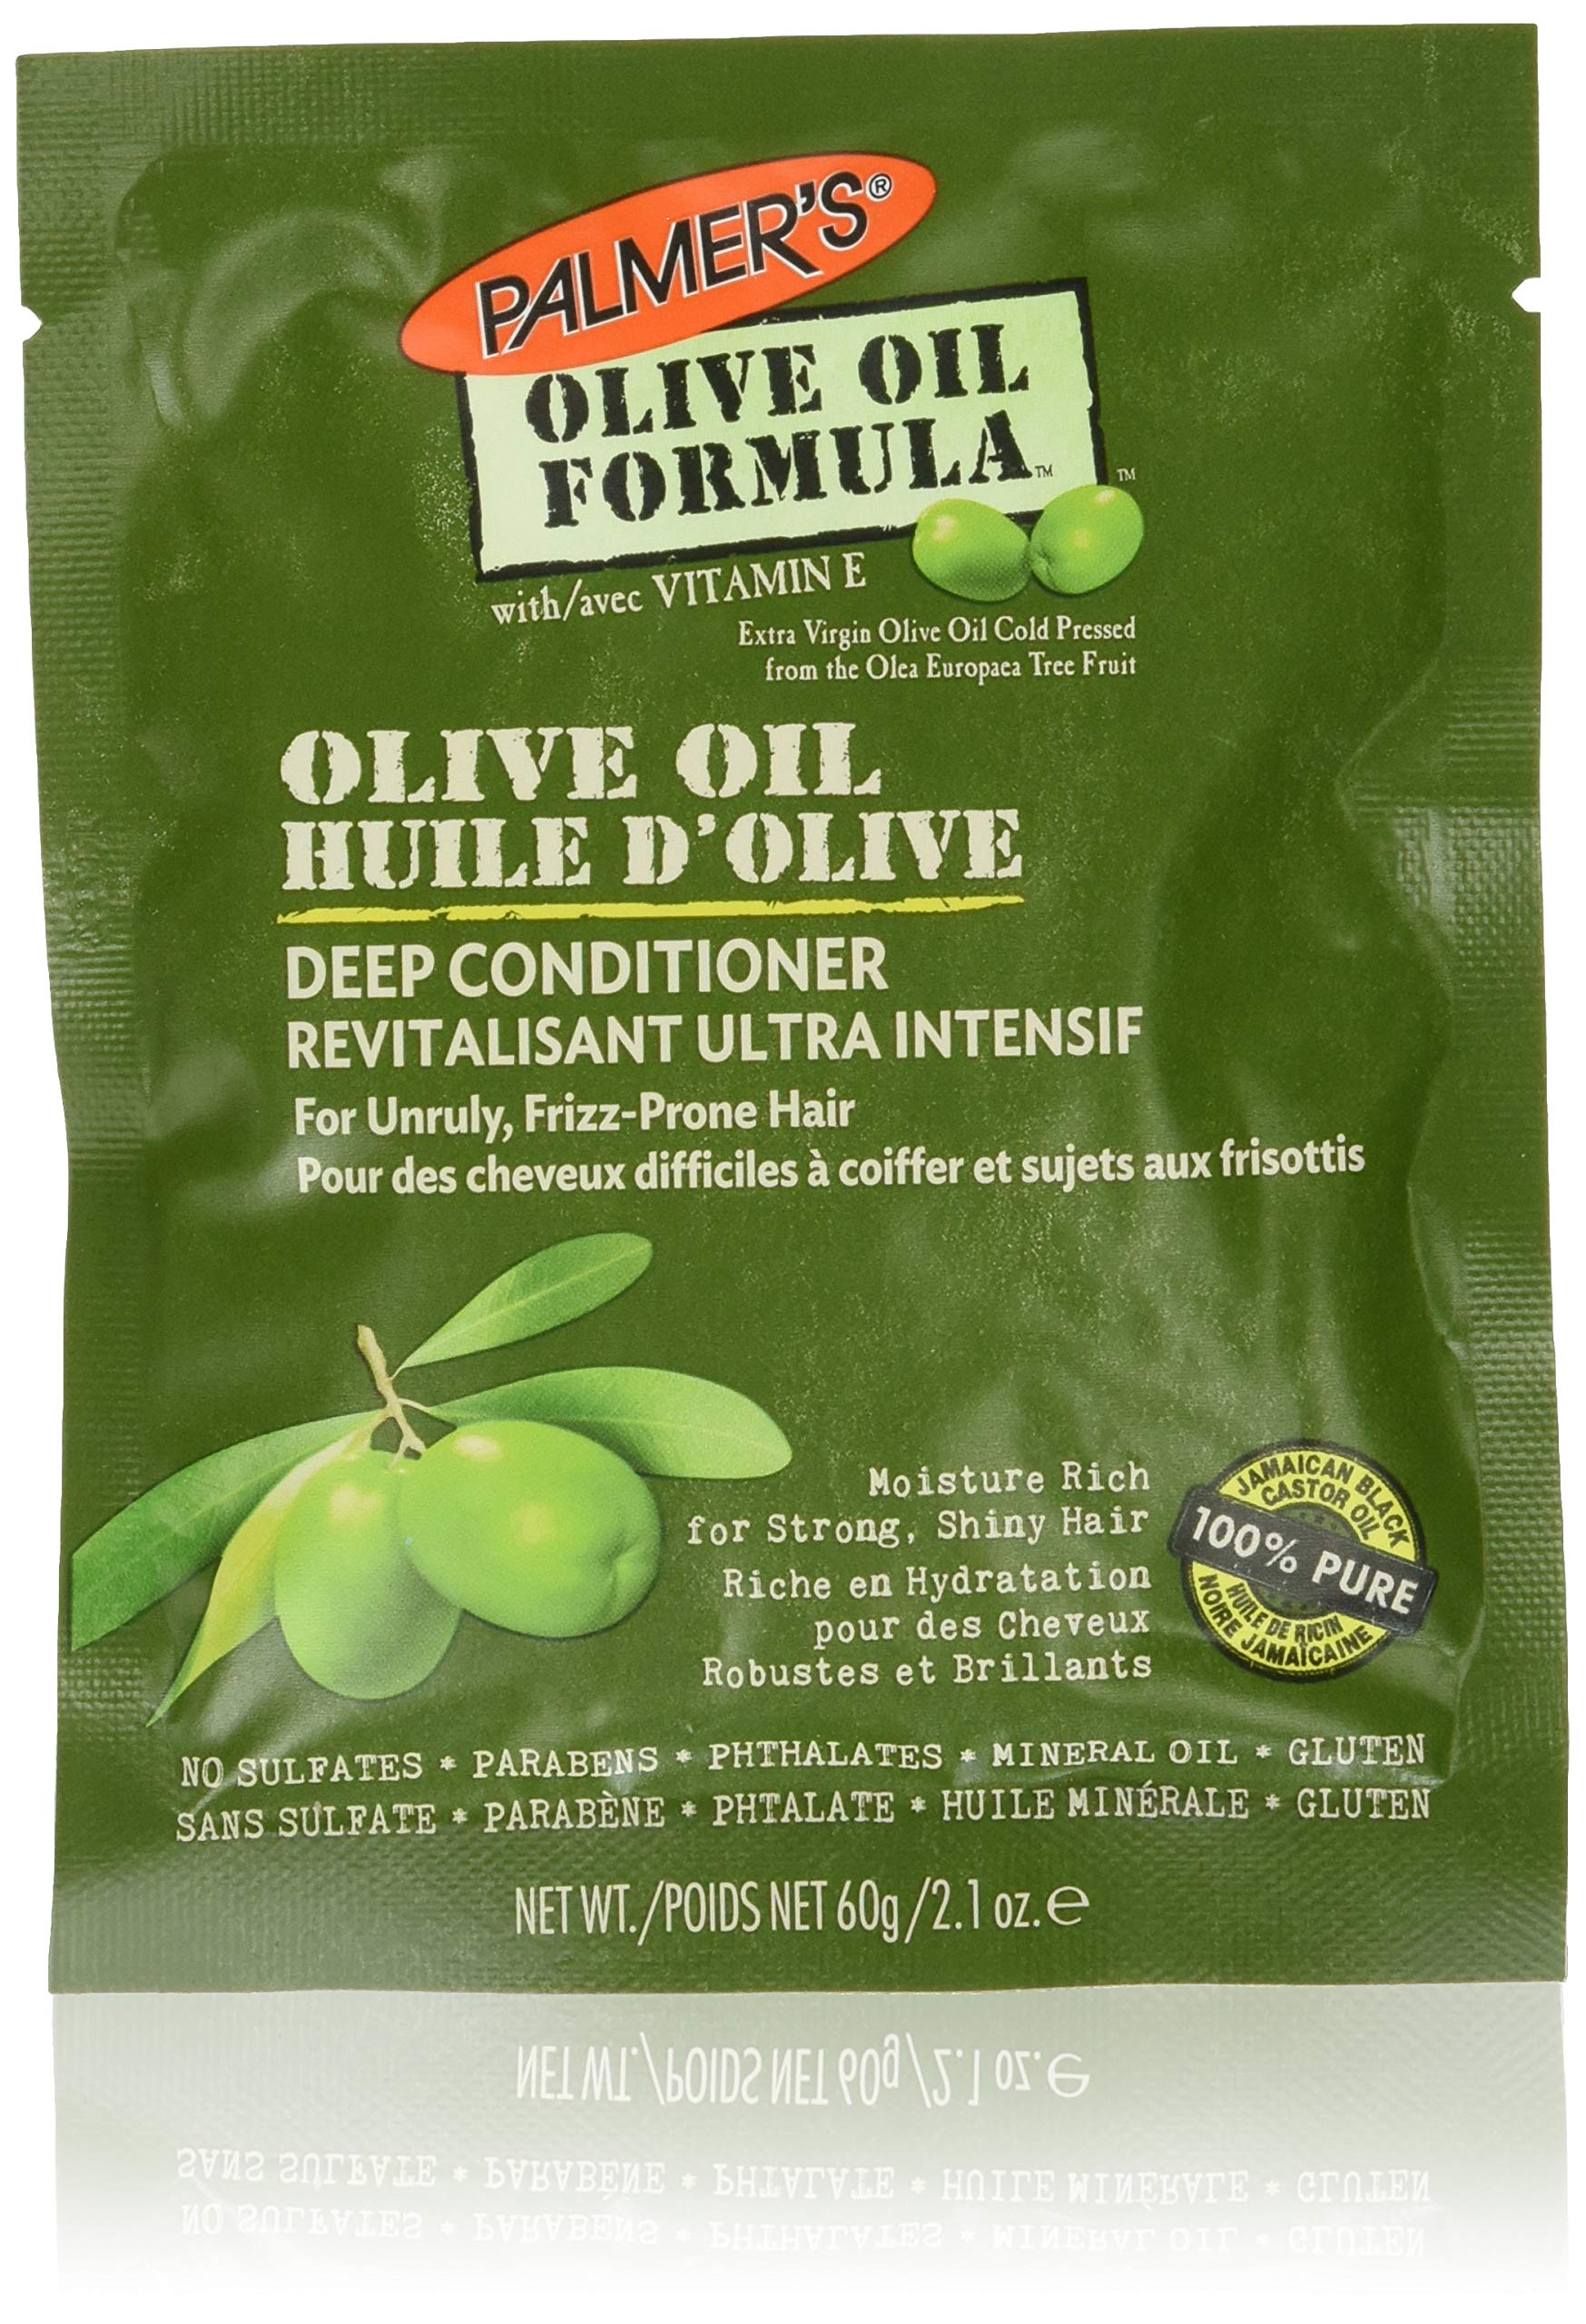 Palmer's Olive Oil Formula Deep Conditioner Packet, 2.1 Ounces